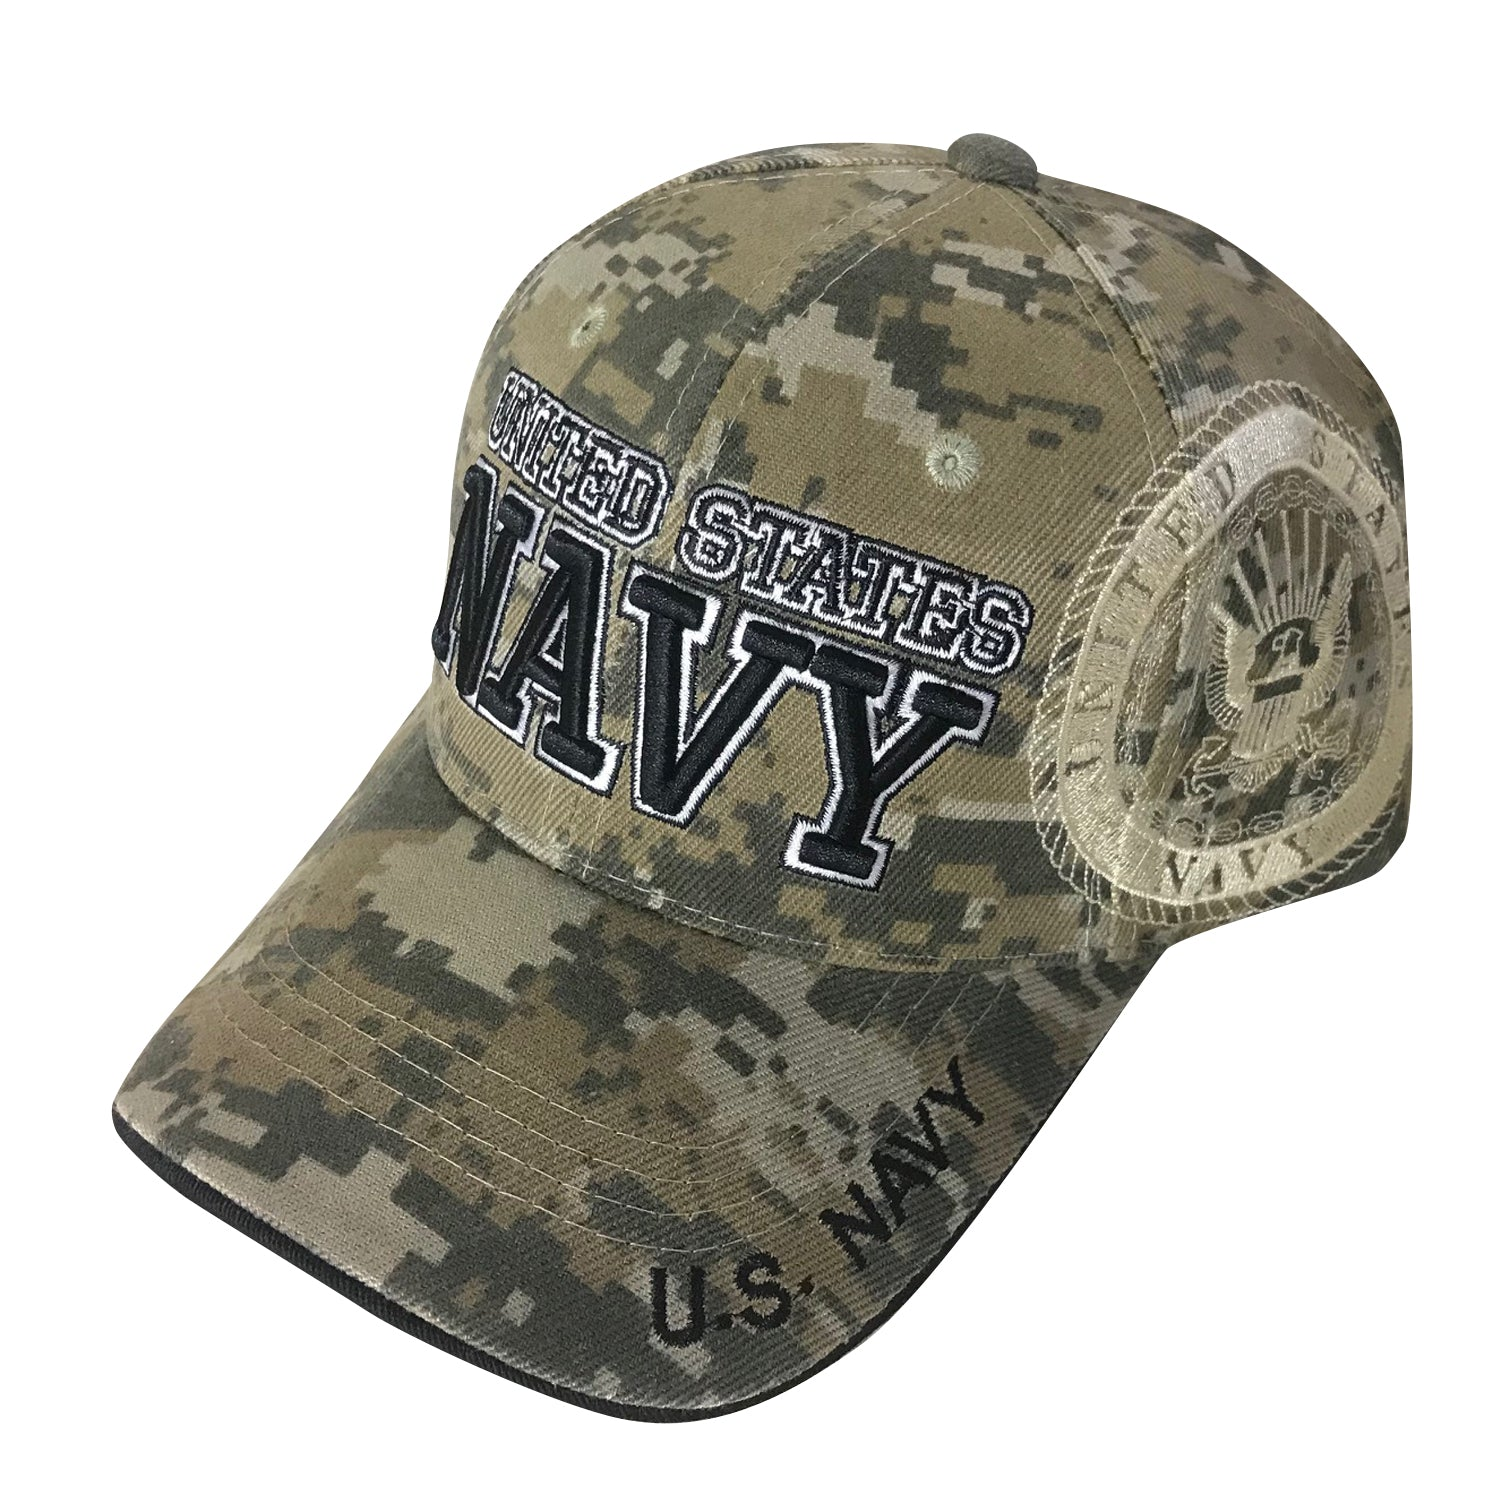 U.S. Navy Acrylic Cap - Digital Camo by Icon Sports